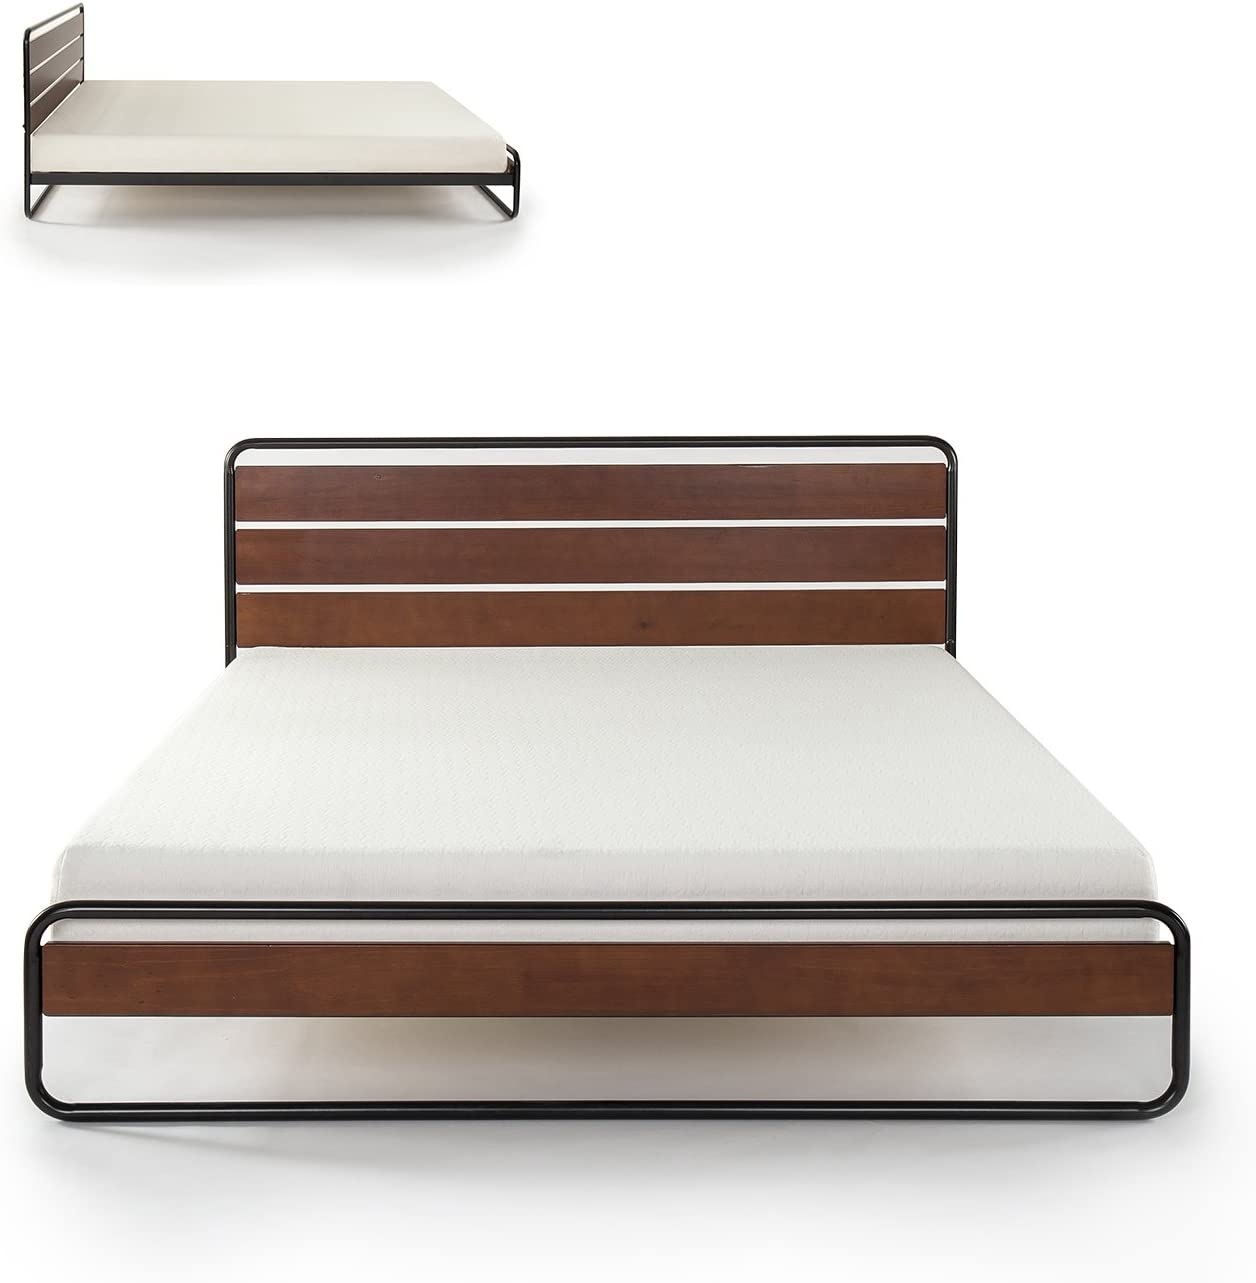 Zinus Therese Metal and Wood Platform Bed with Wood Slat Support, Twin